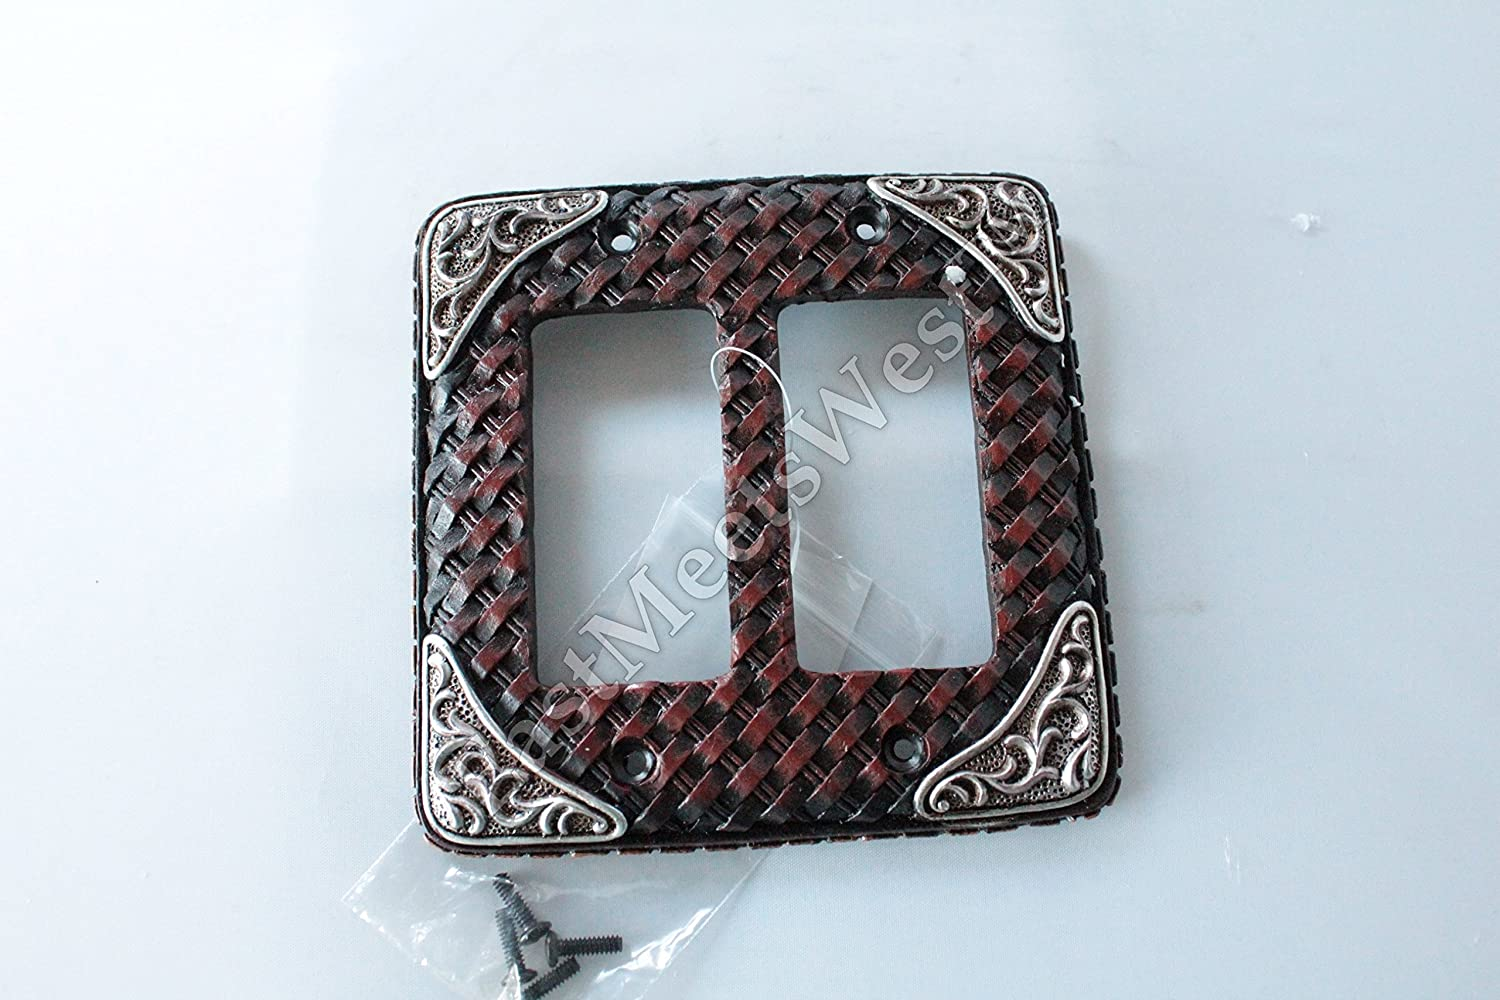 Western Cowboy Rustic Woven Leather Look Silver Accents Switch Plate Covers Electric Western Decor (Double Rocker)